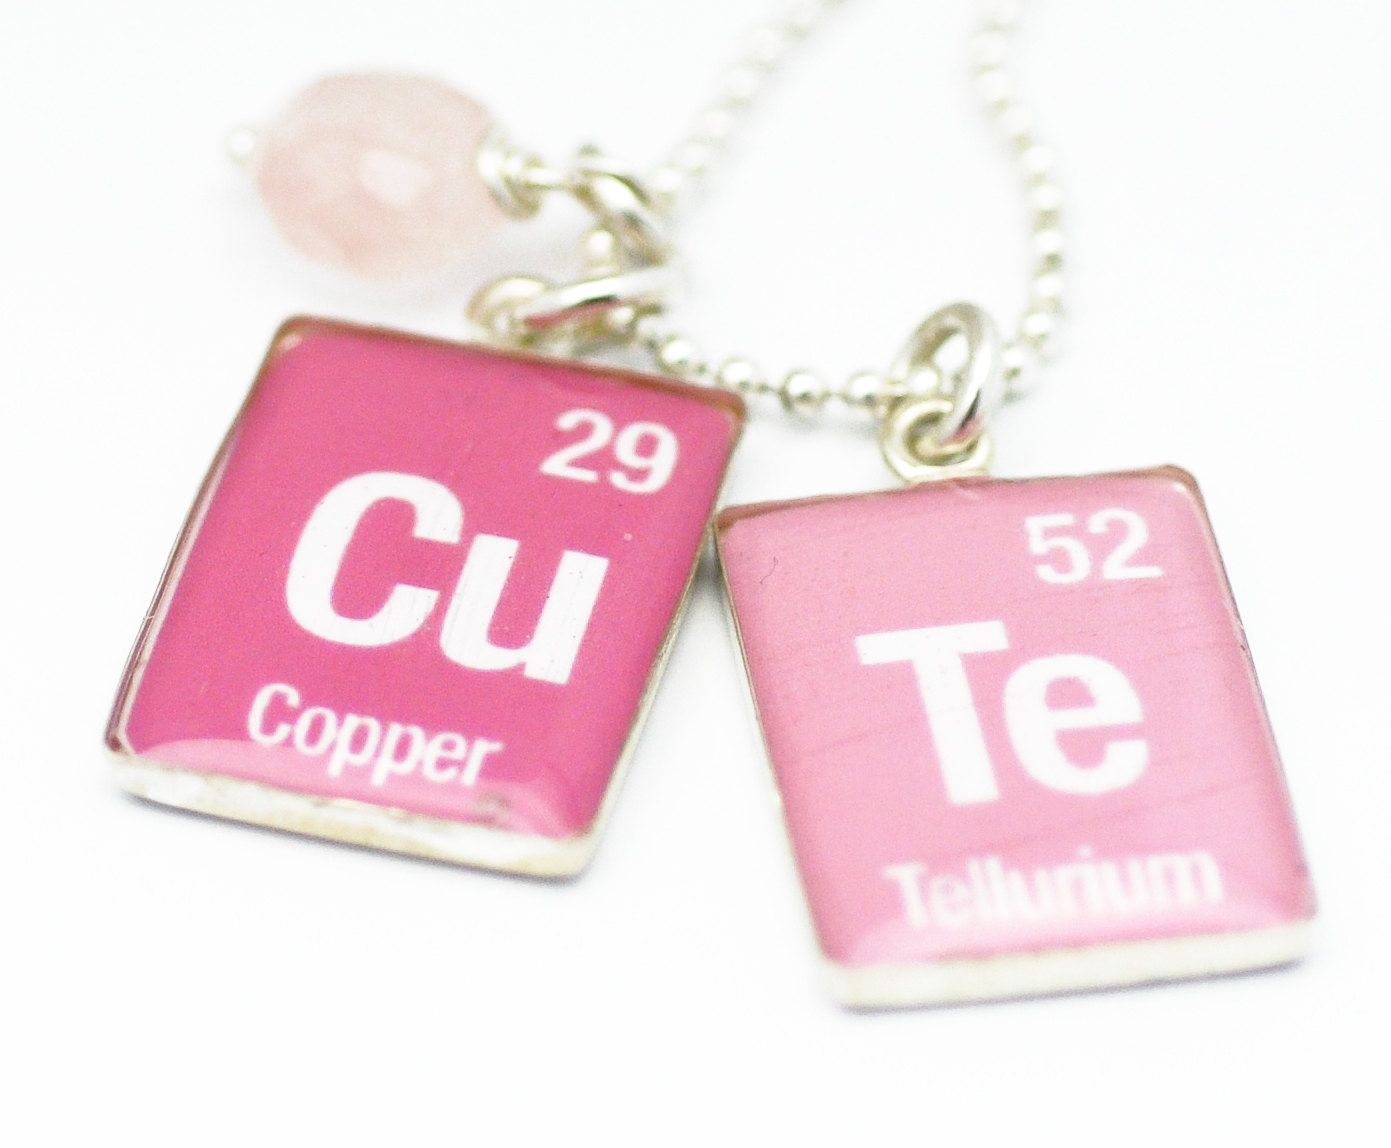 Periodic table necklace element word necklace pink cute periodic table necklace element word necklace pink cute pendants sterling silver by sugarsidewalk on gamestrikefo Gallery